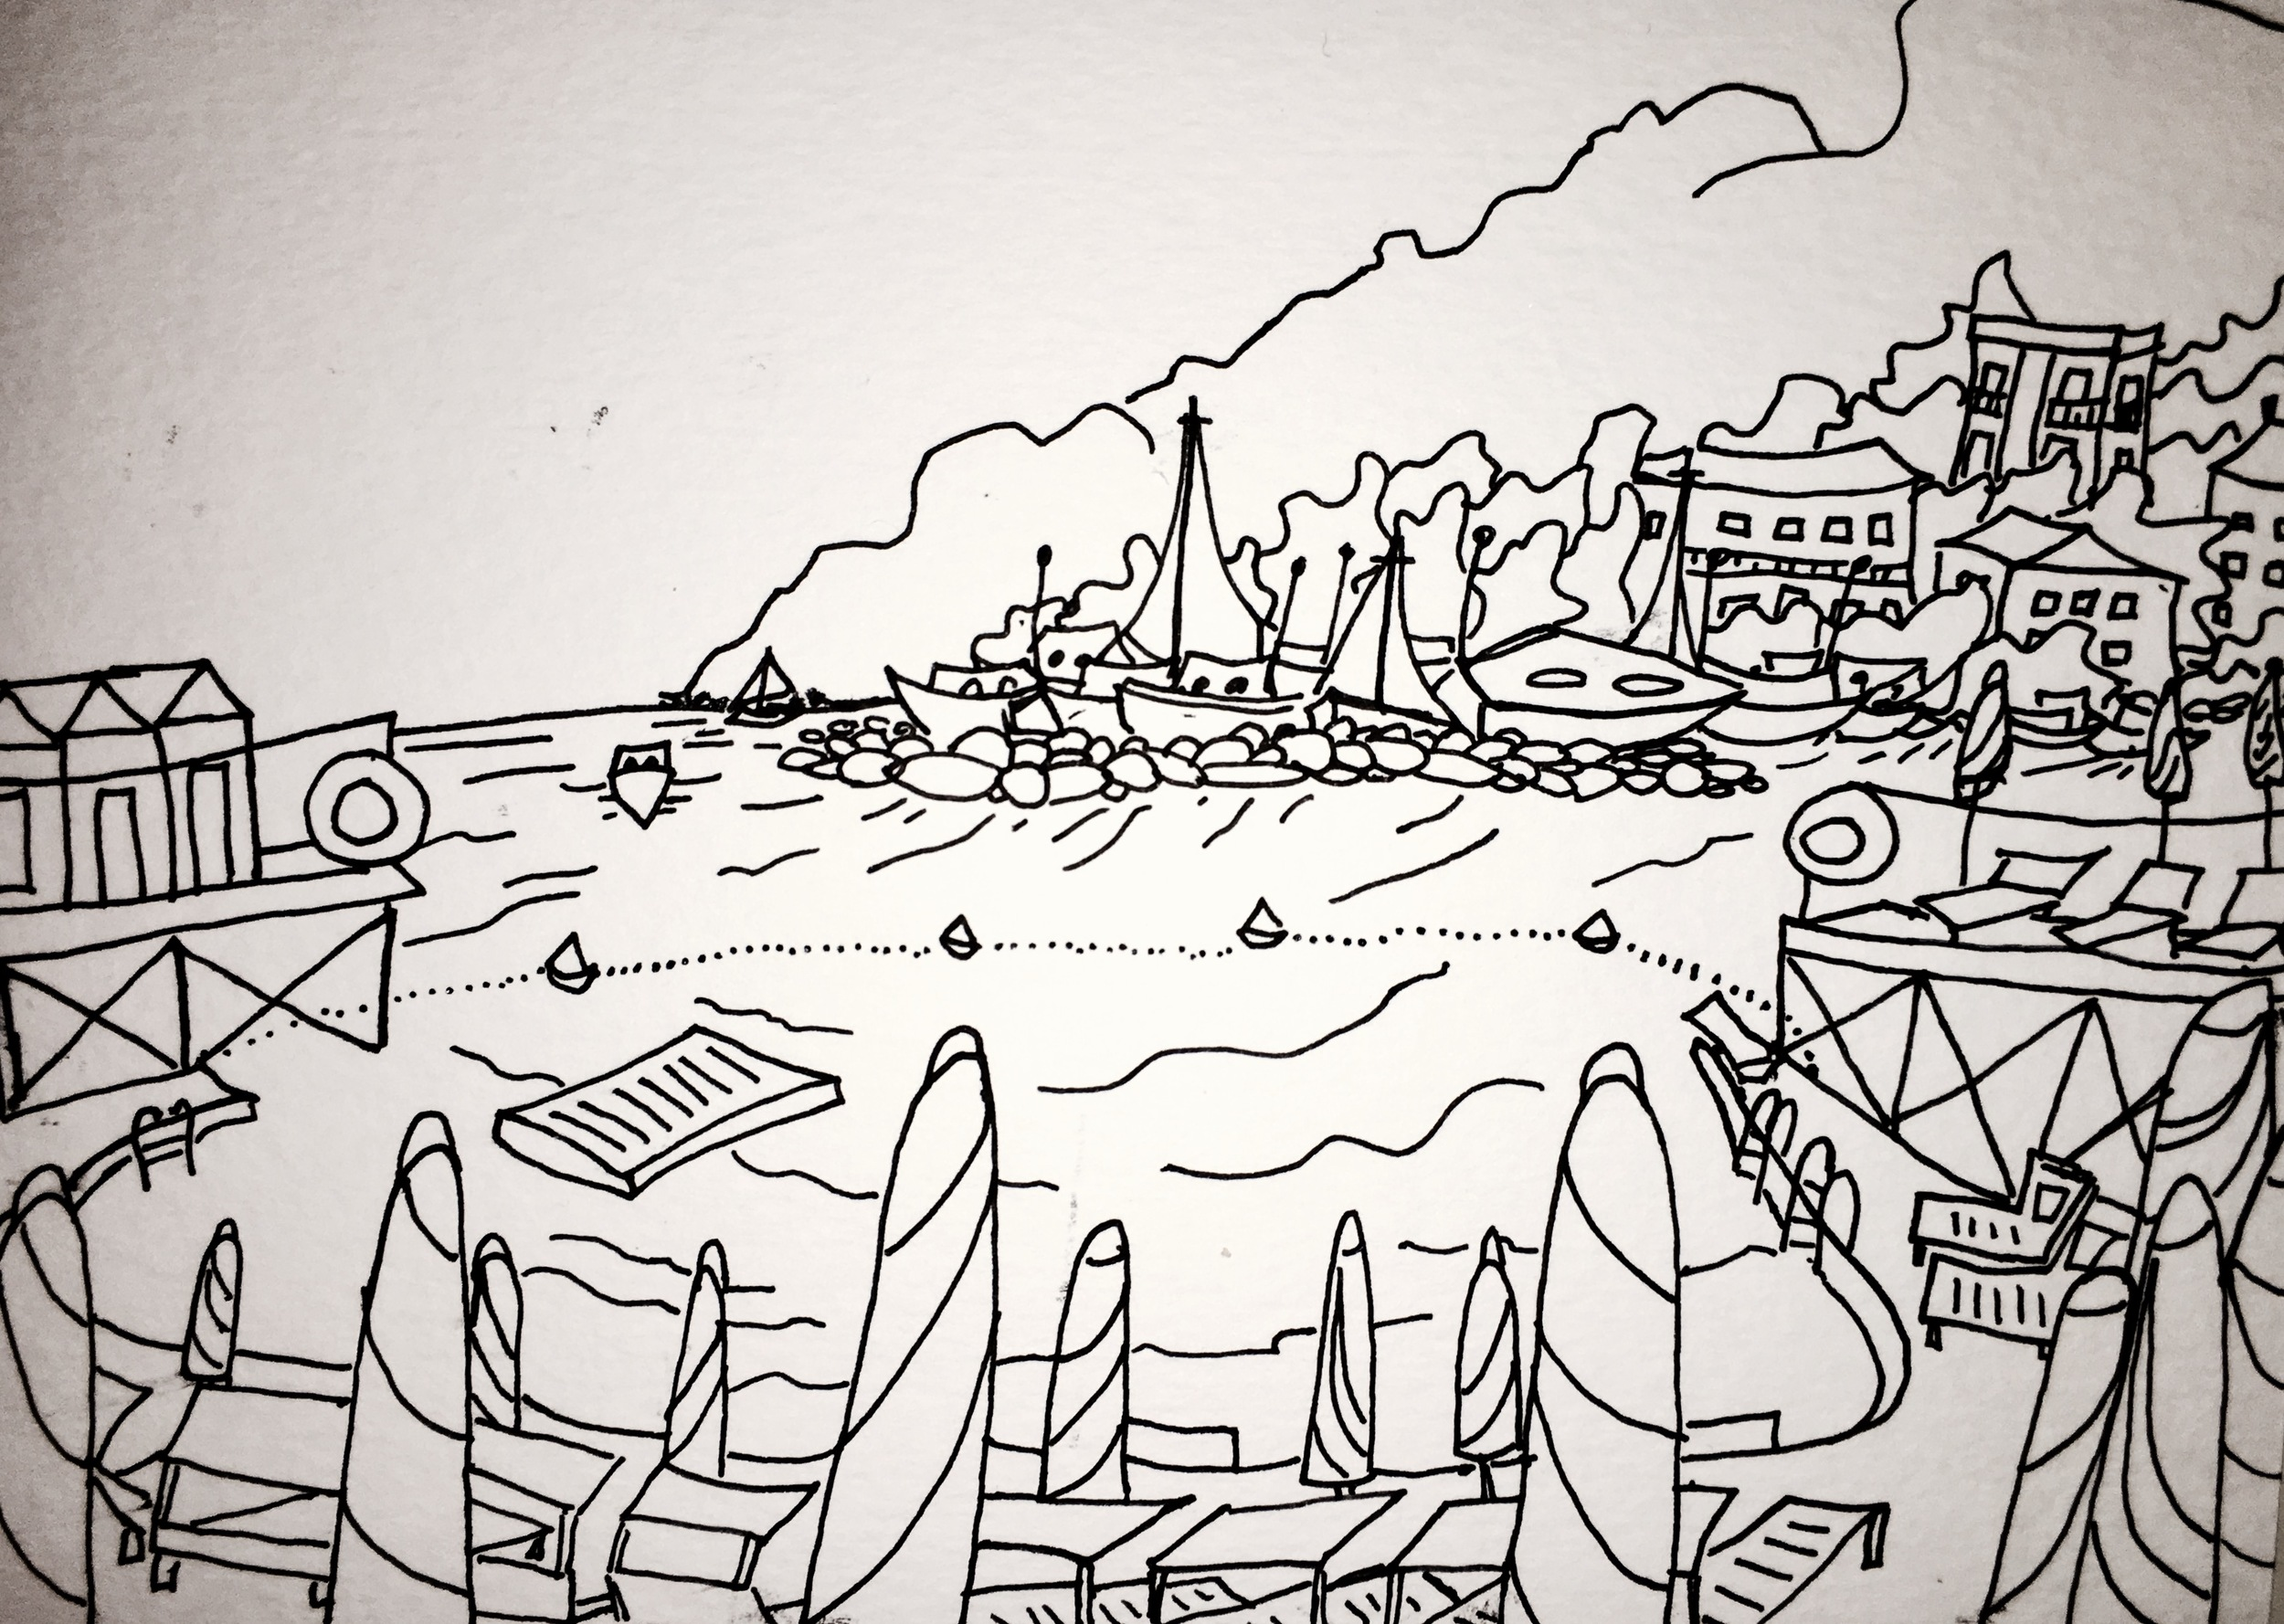 black and white line drawing of beach in Rapallo, Italy by Katie Jurkiewicz